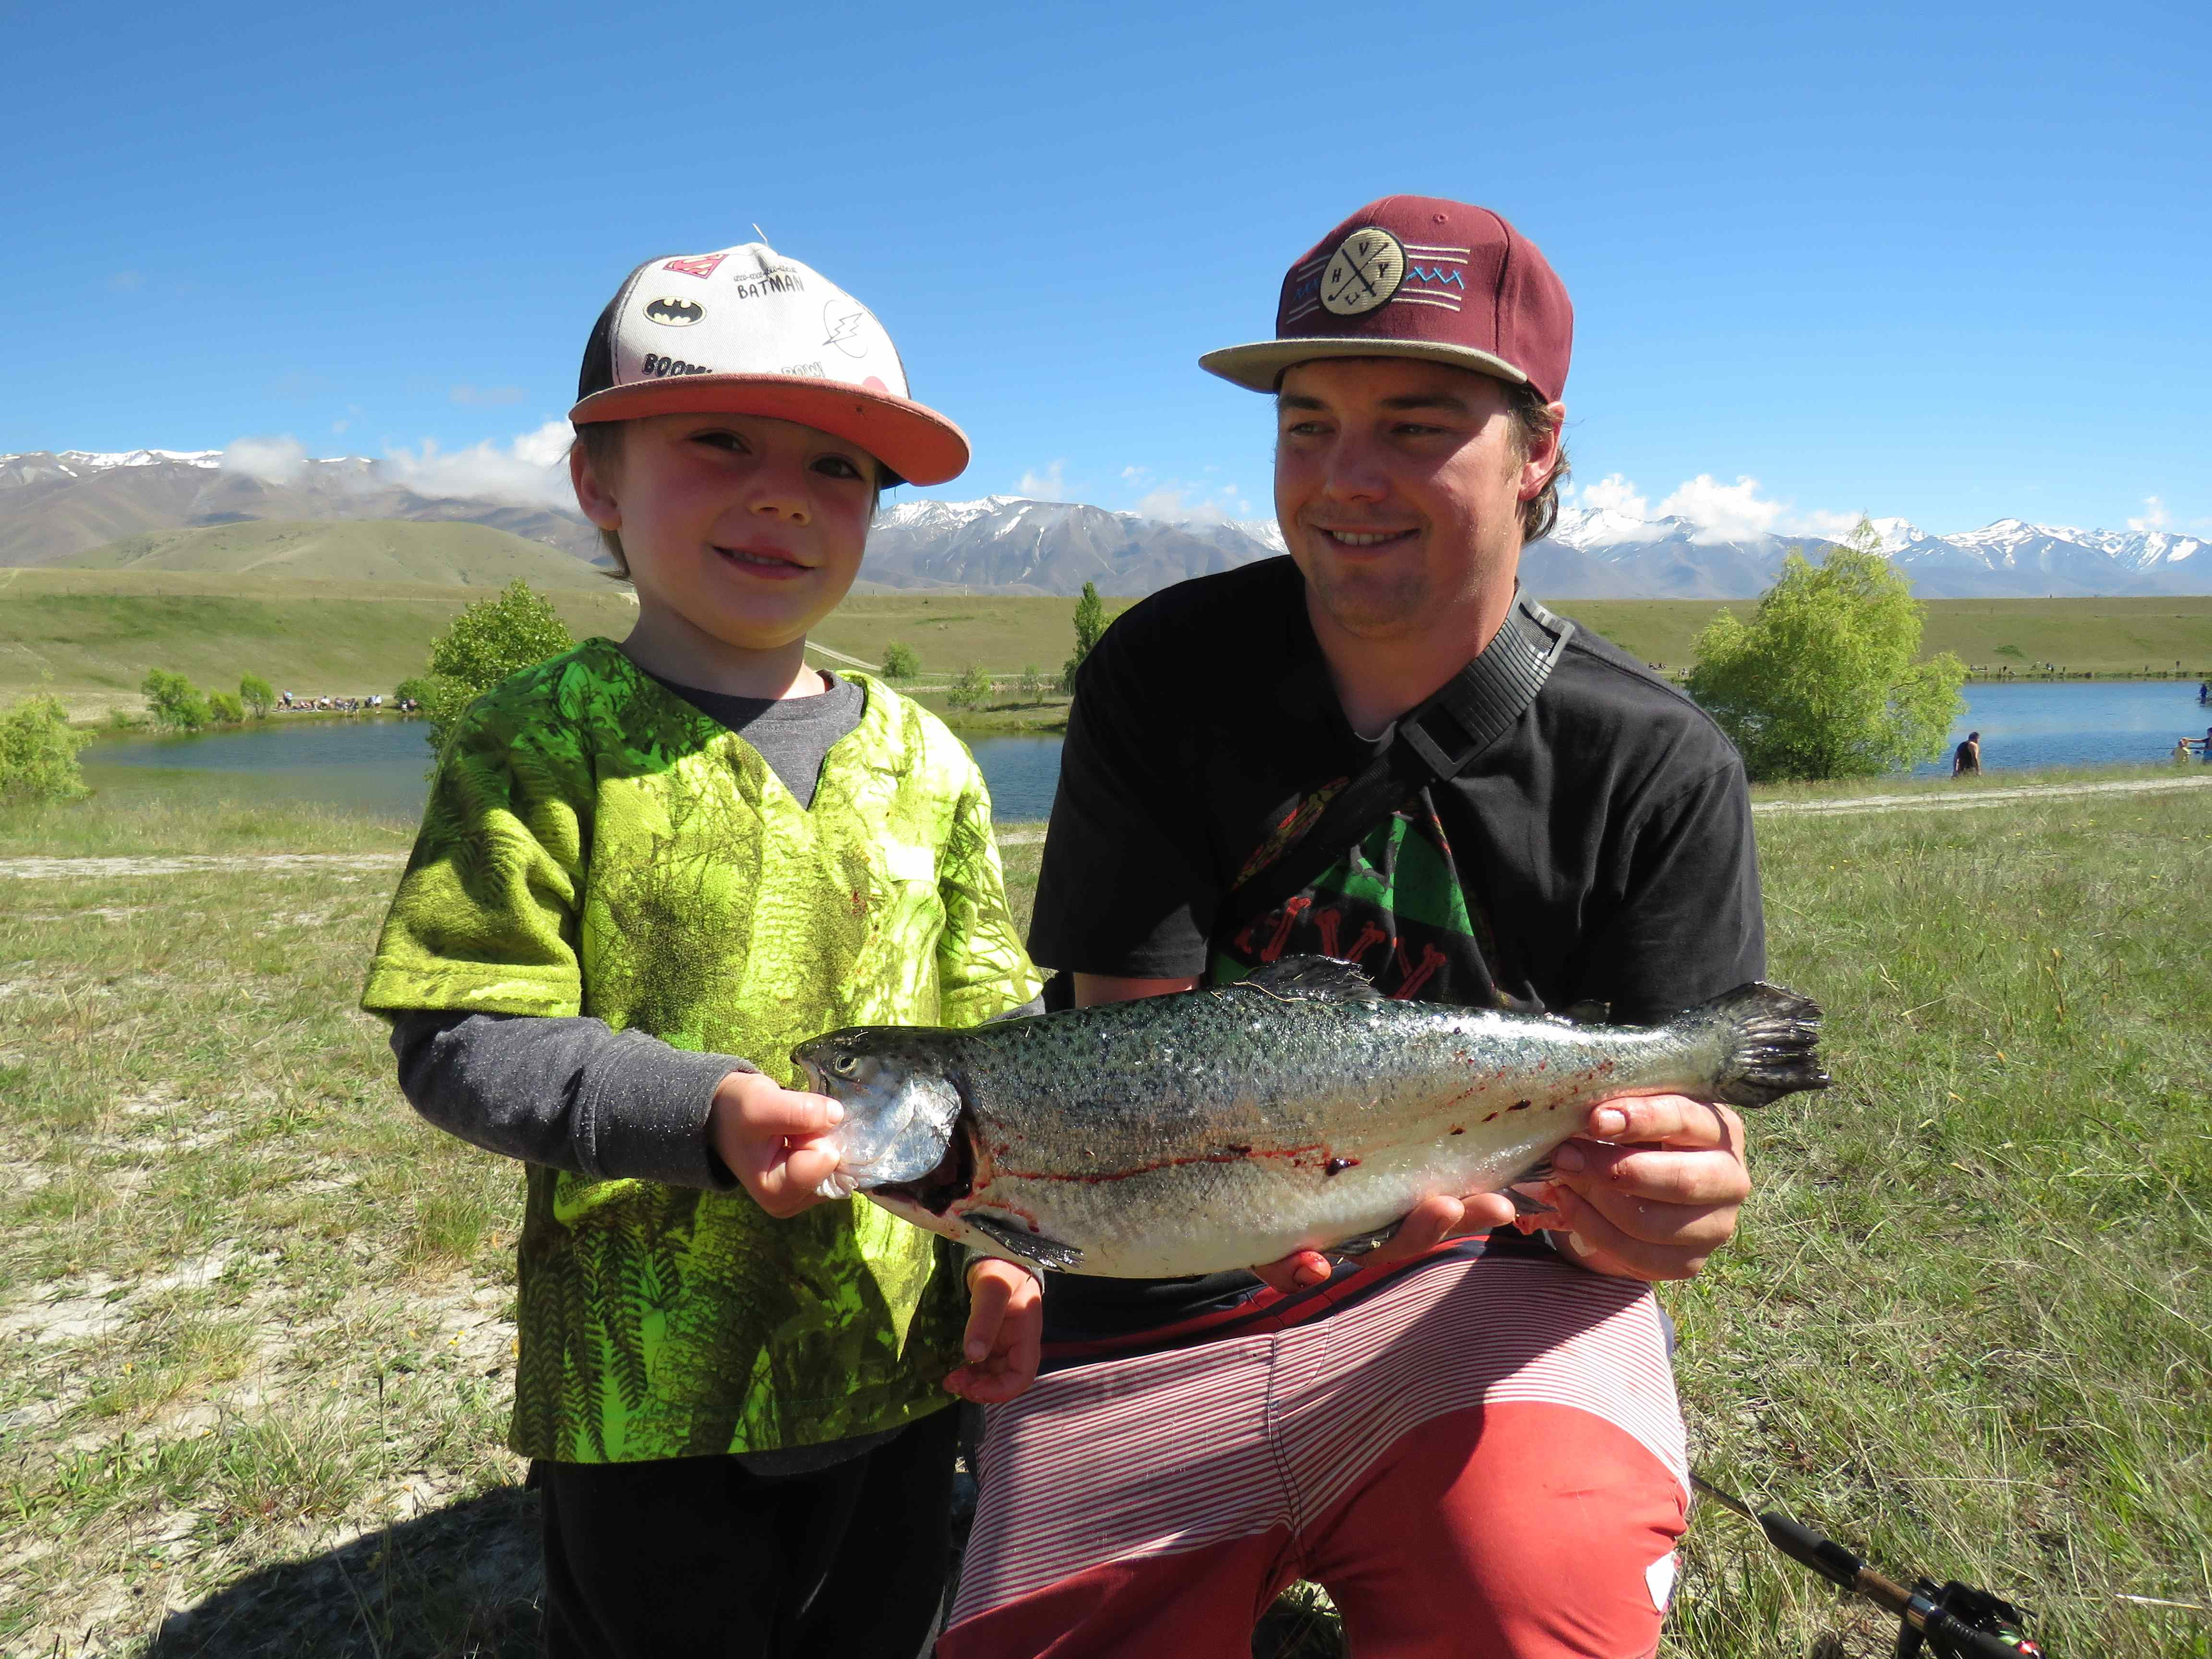 WFR1718.18Kolby Parrant and dad Tom at the Kids Salmon Fishing Day